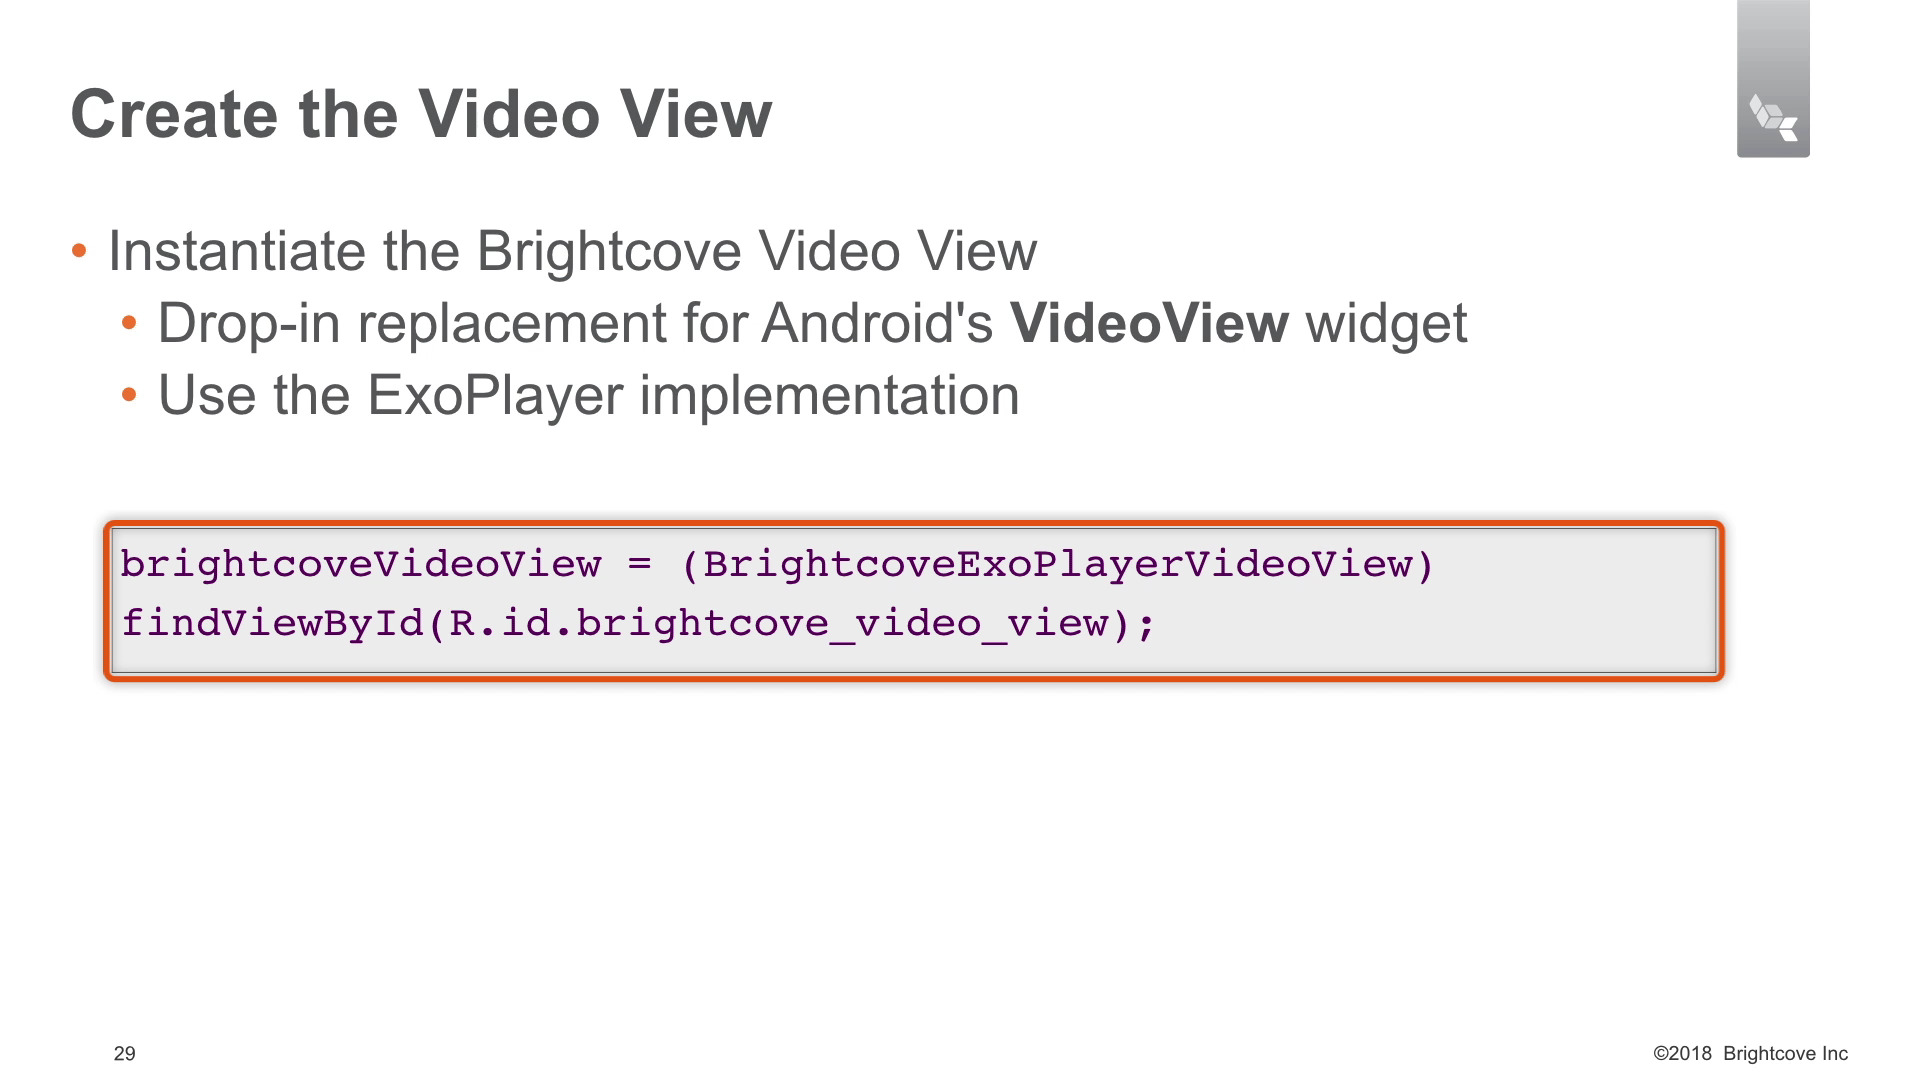 Creating the video view